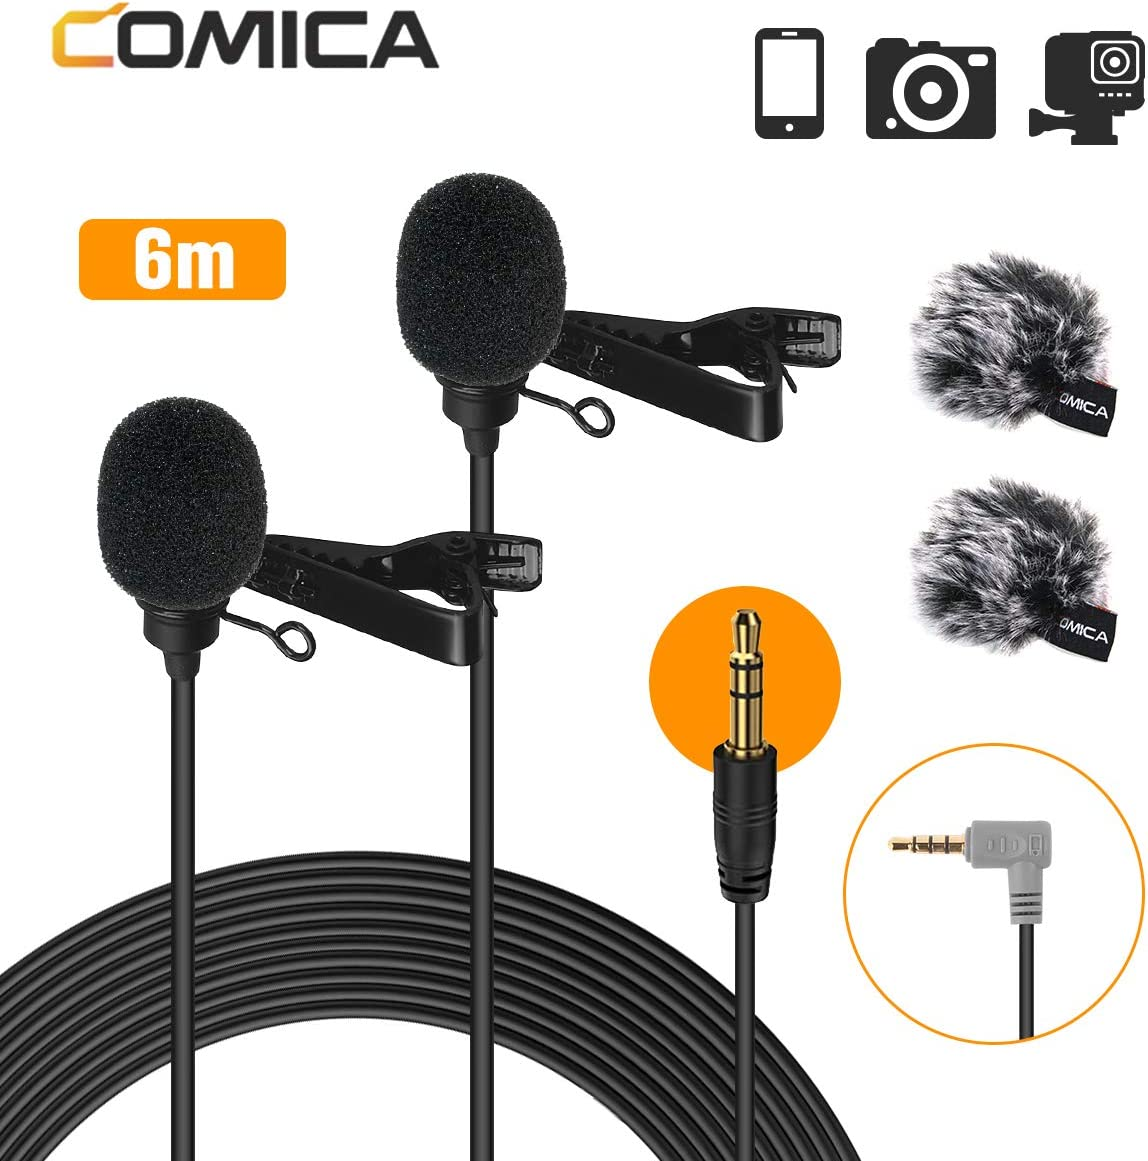 Comica Dual Lavalier Microphone Lapel Clip-on Omnidirectional Condenser Mic CVM-D02 2.5m//8.2ft Cable for Smartphone Camera Camcorder Laptop PC